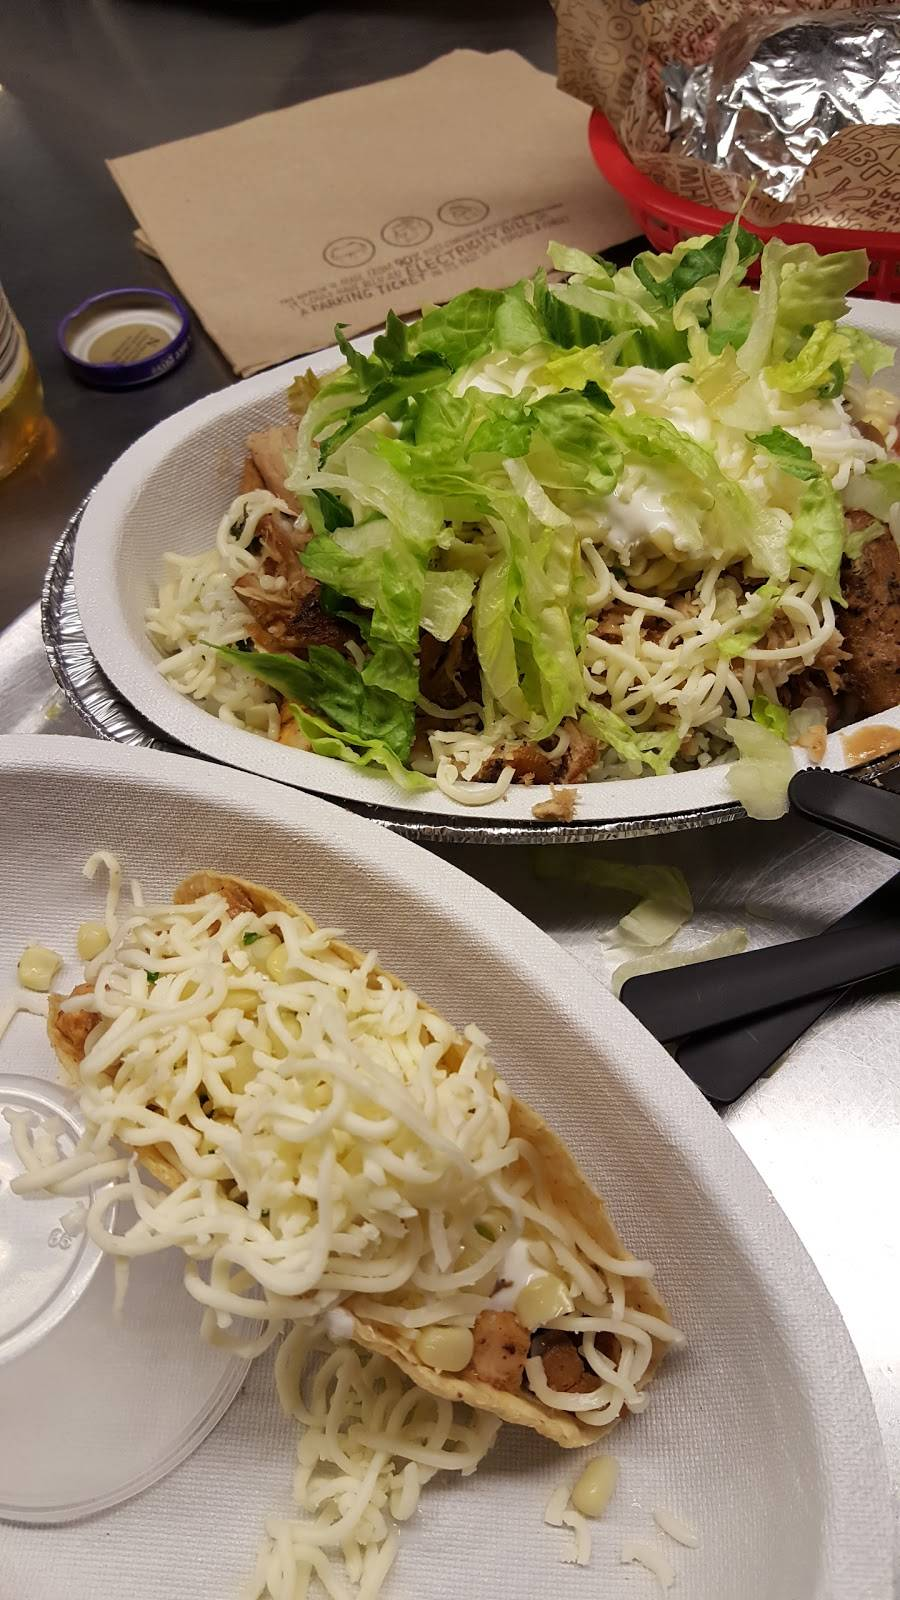 Chipotle Mexican Grill | restaurant | 193 W 237th St, Bronx, NY 10463, USA | 7186016022 OR +1 718-601-6022